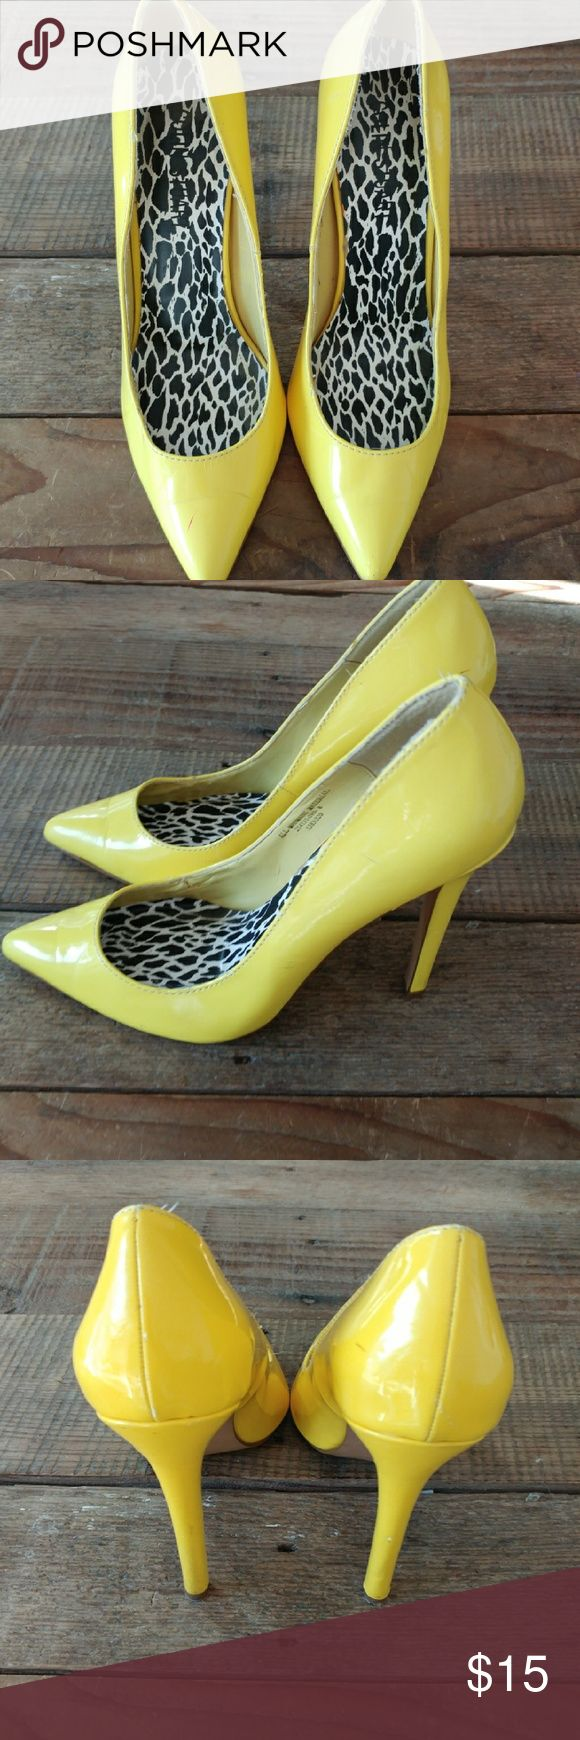 """Colin Stuart Yellow high heels Sz 8 Colin Stuart Yellow high heels. These have some scuffs and marks. Size 8. See photos. 5"""" heels. Colin Stuart Shoes Heels"""